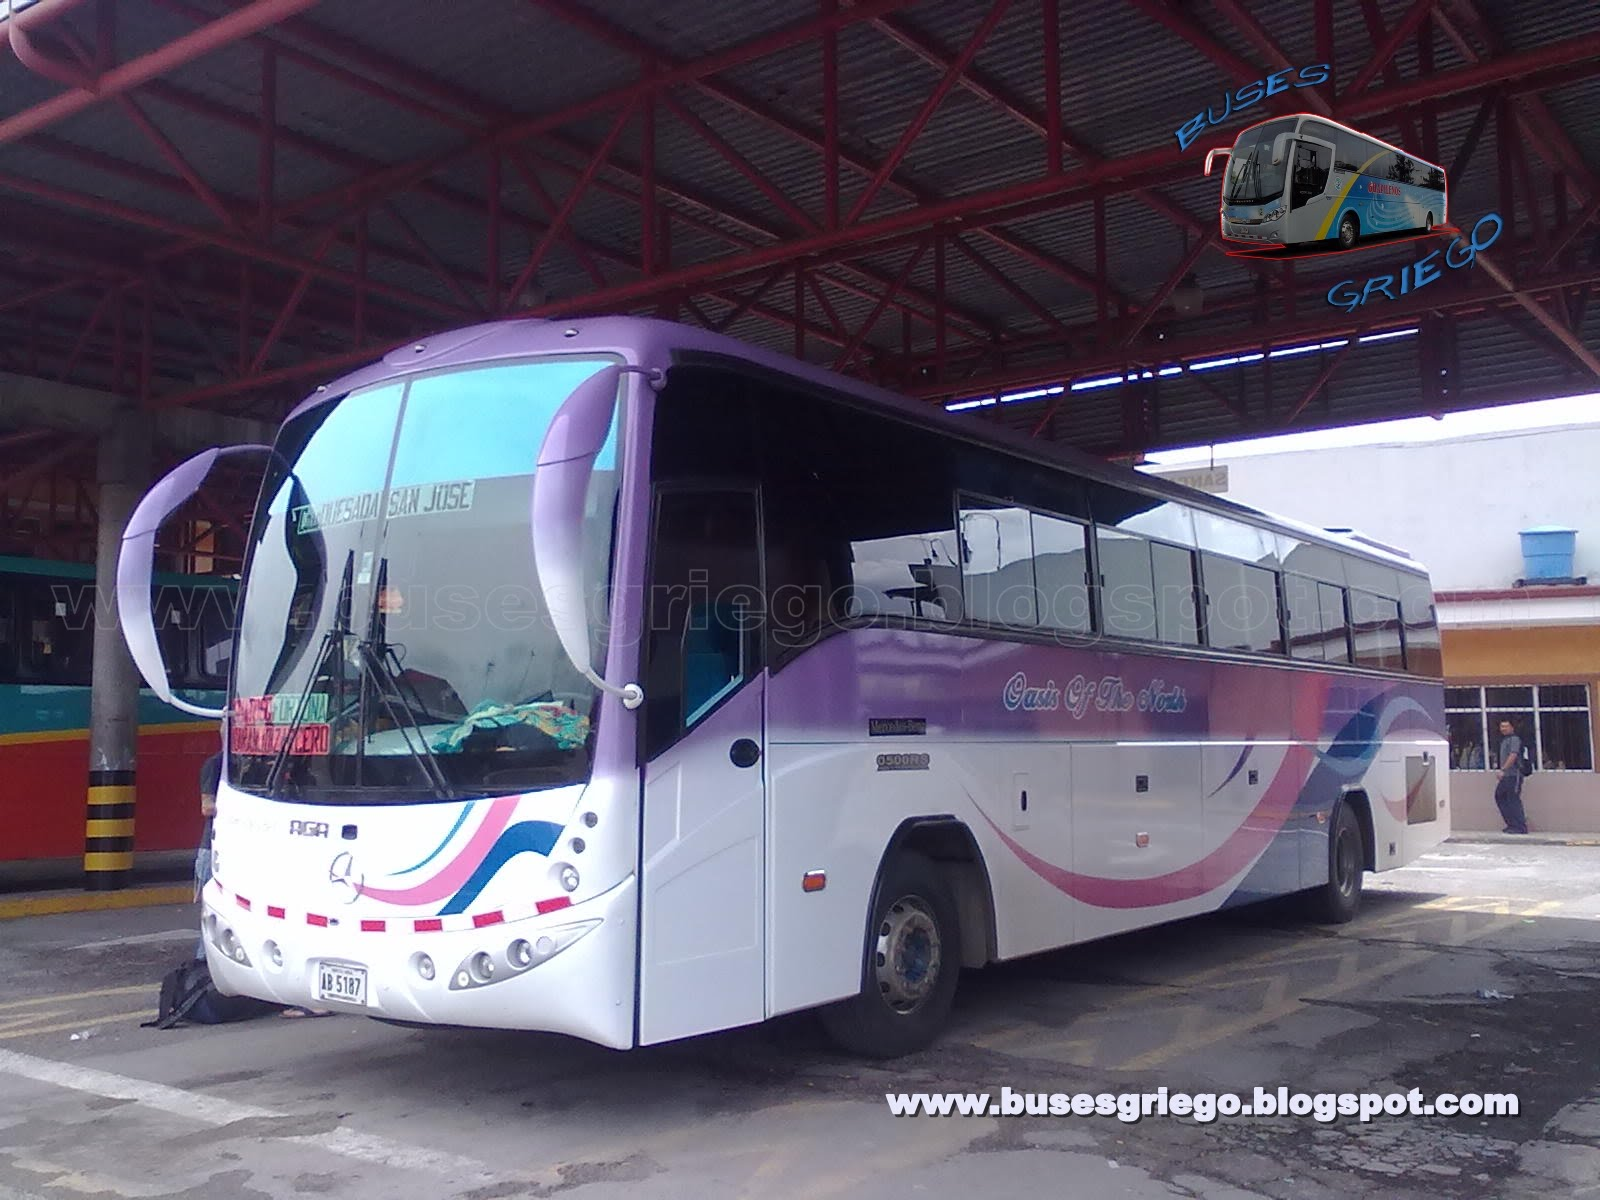 Buses griego galeria 16 31 10 10 for San jose mercedes benz